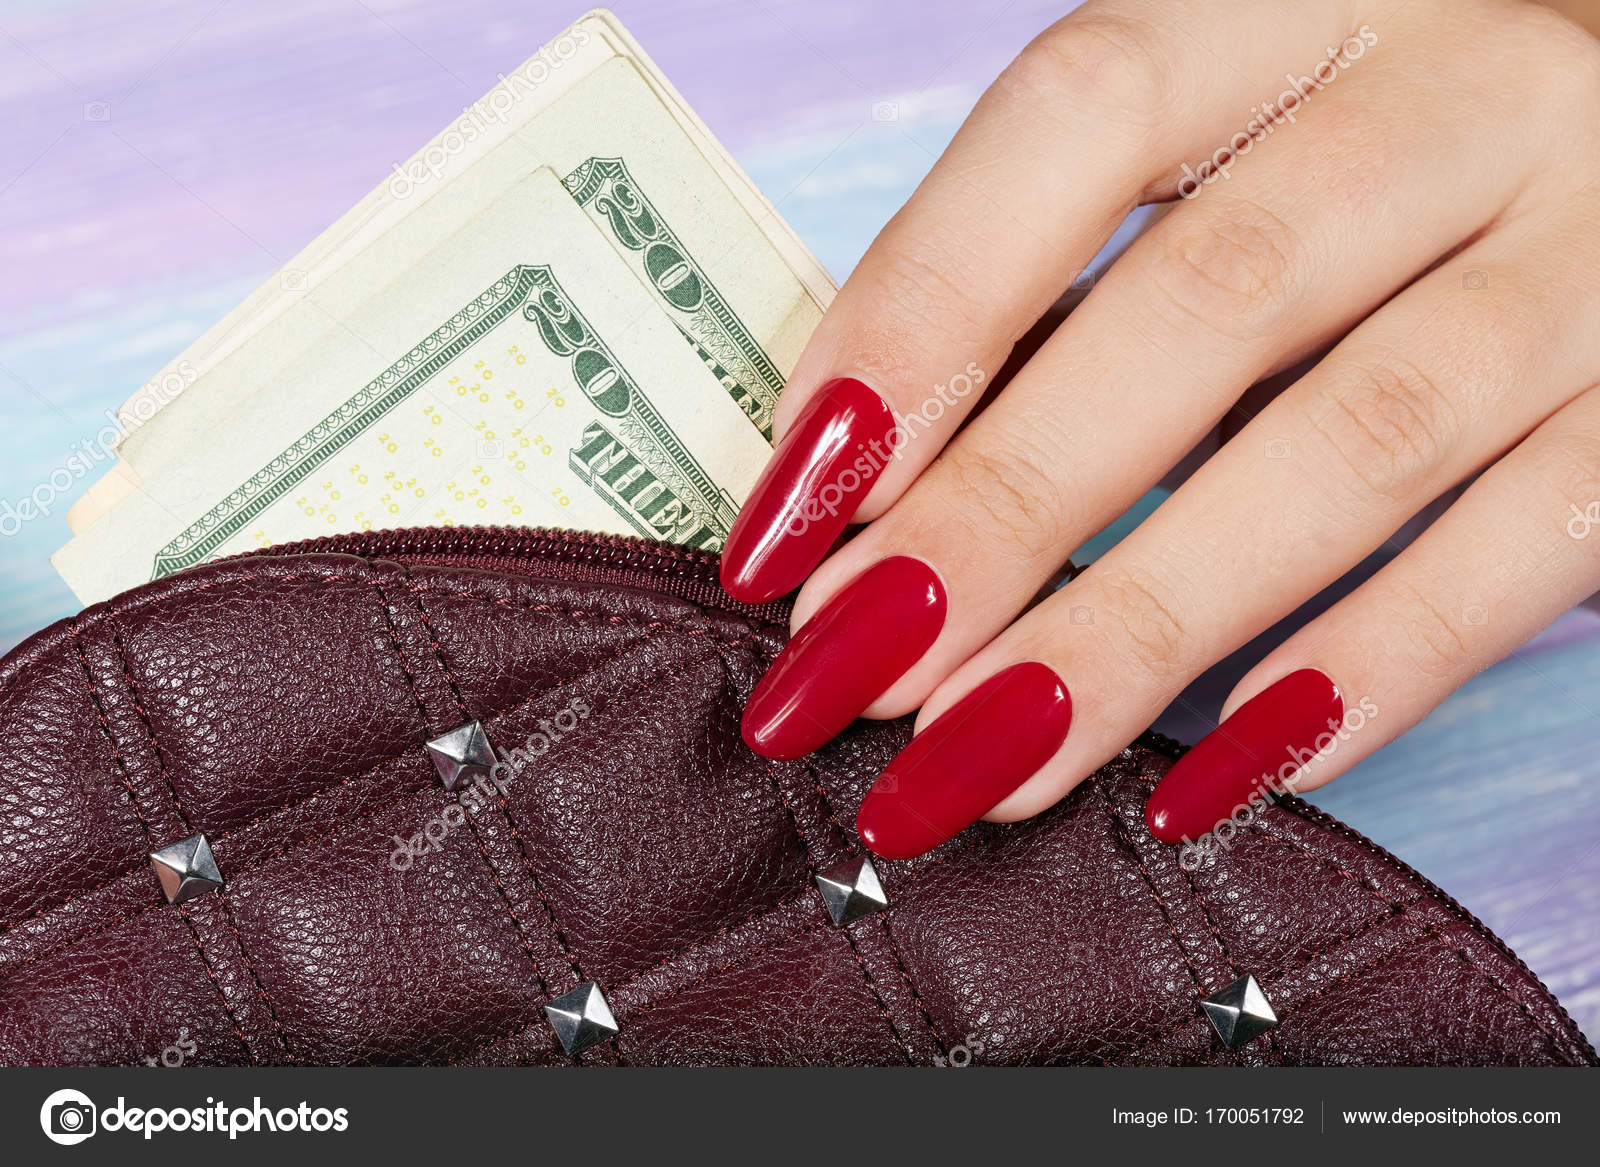 Hands with long artificial manicured nails colored with red nail ...